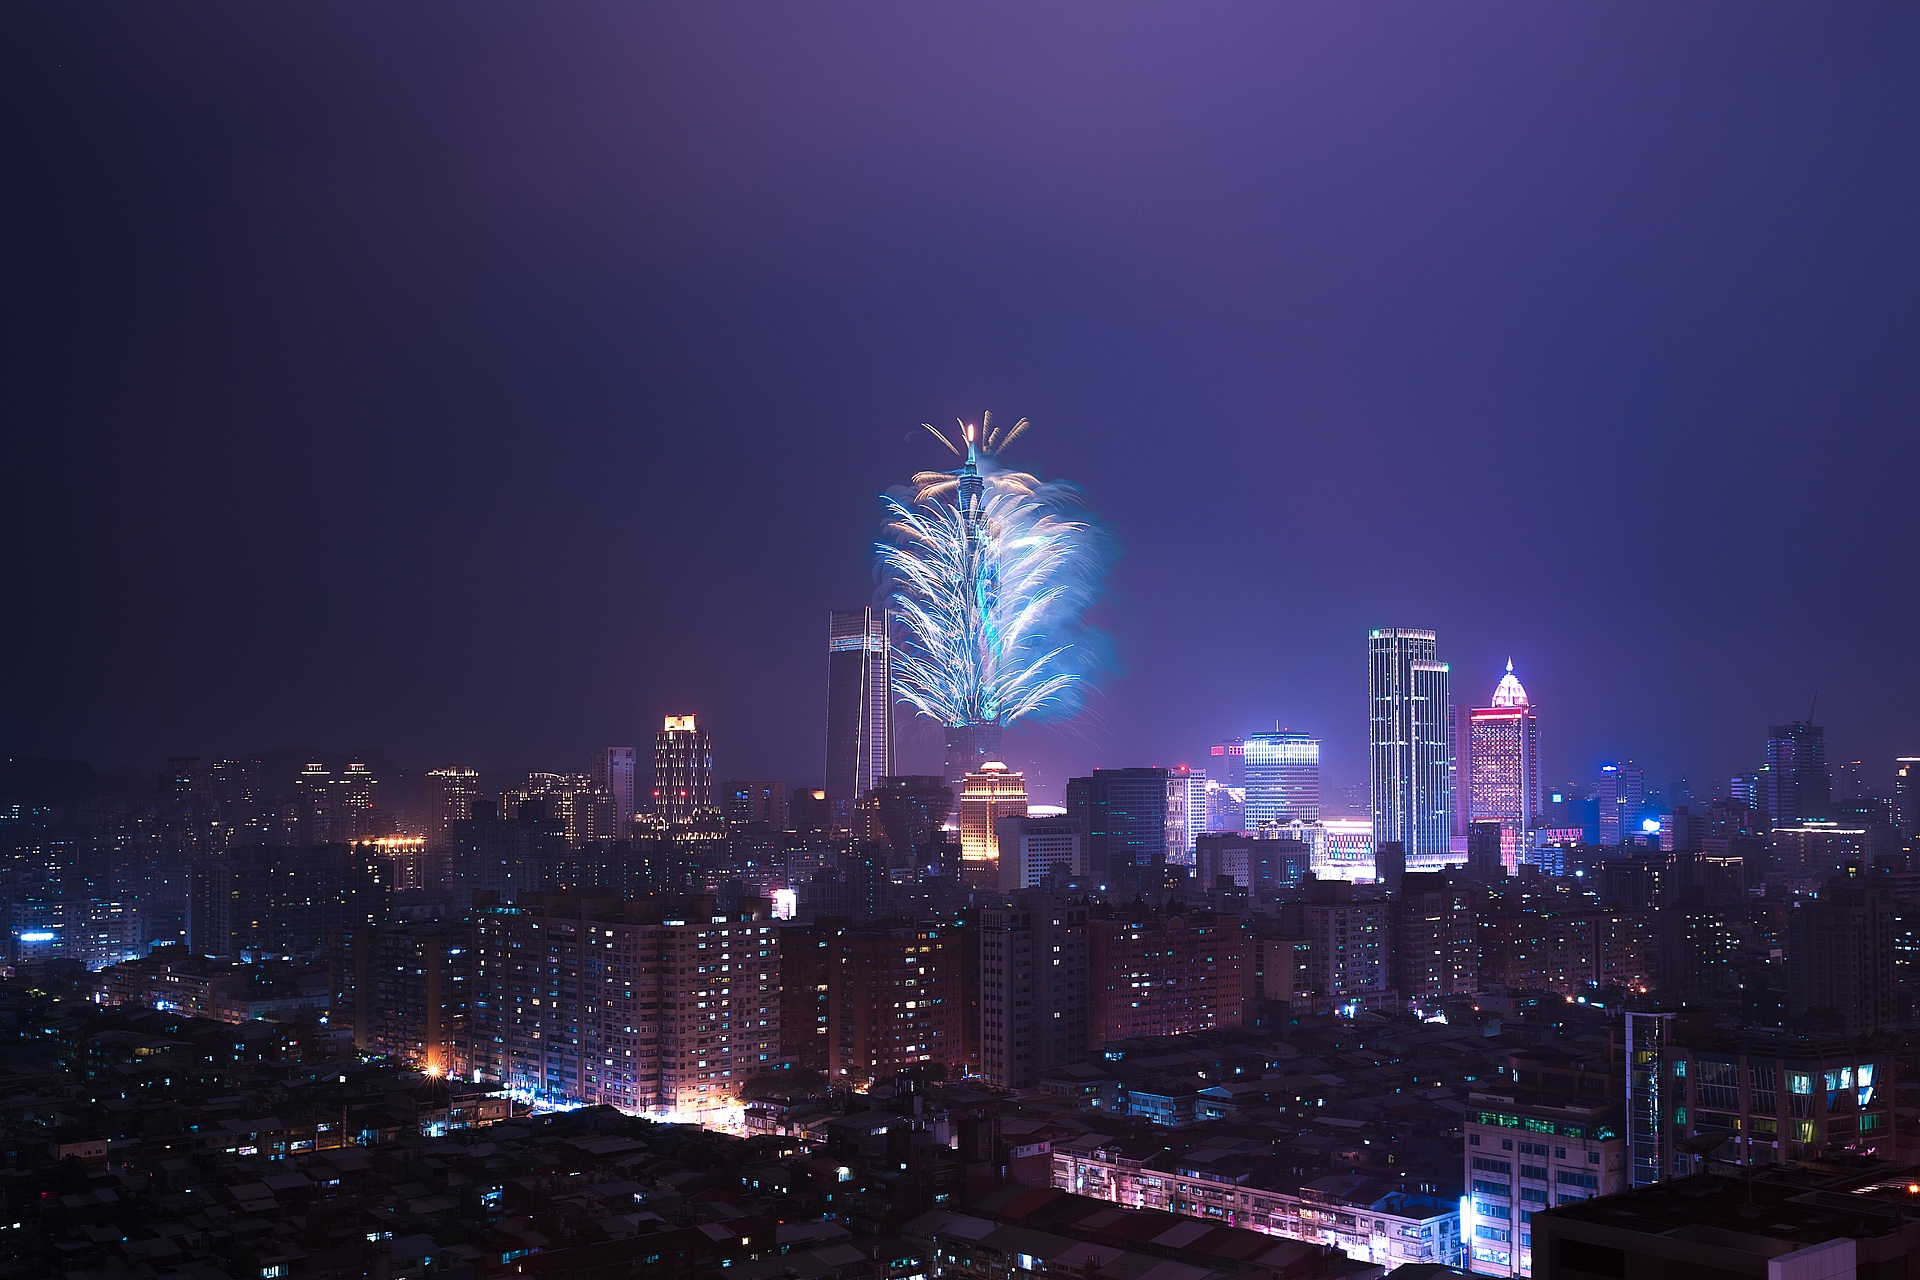 amba Taipei Songshan Hotel New Year Holiday with Stunning Fireworks